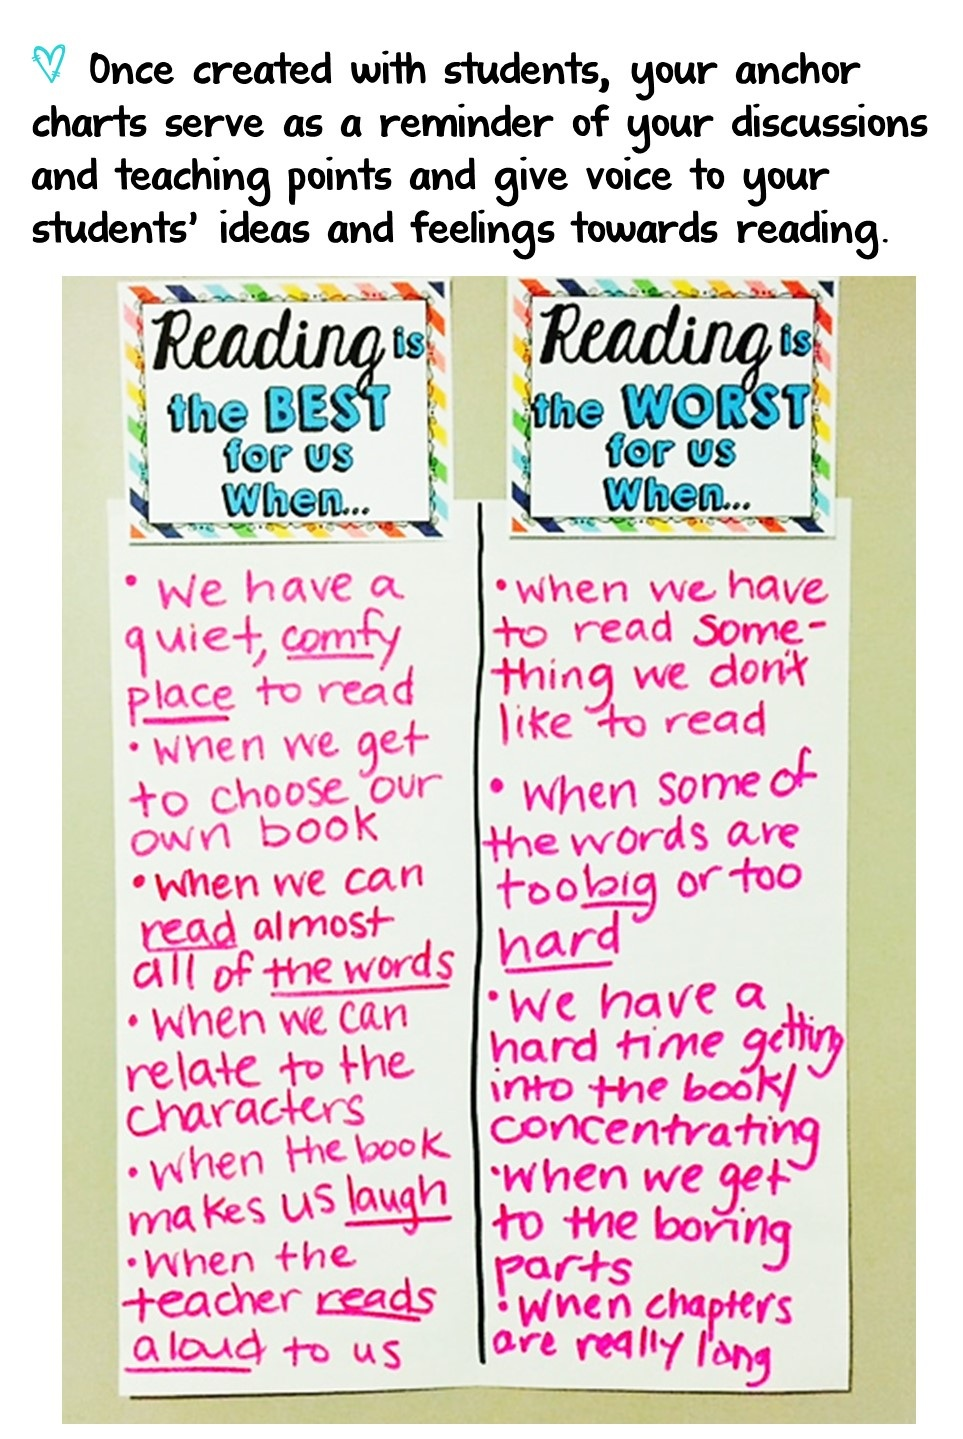 reading+life+reading+is+the+best+anchor+chart.jpg